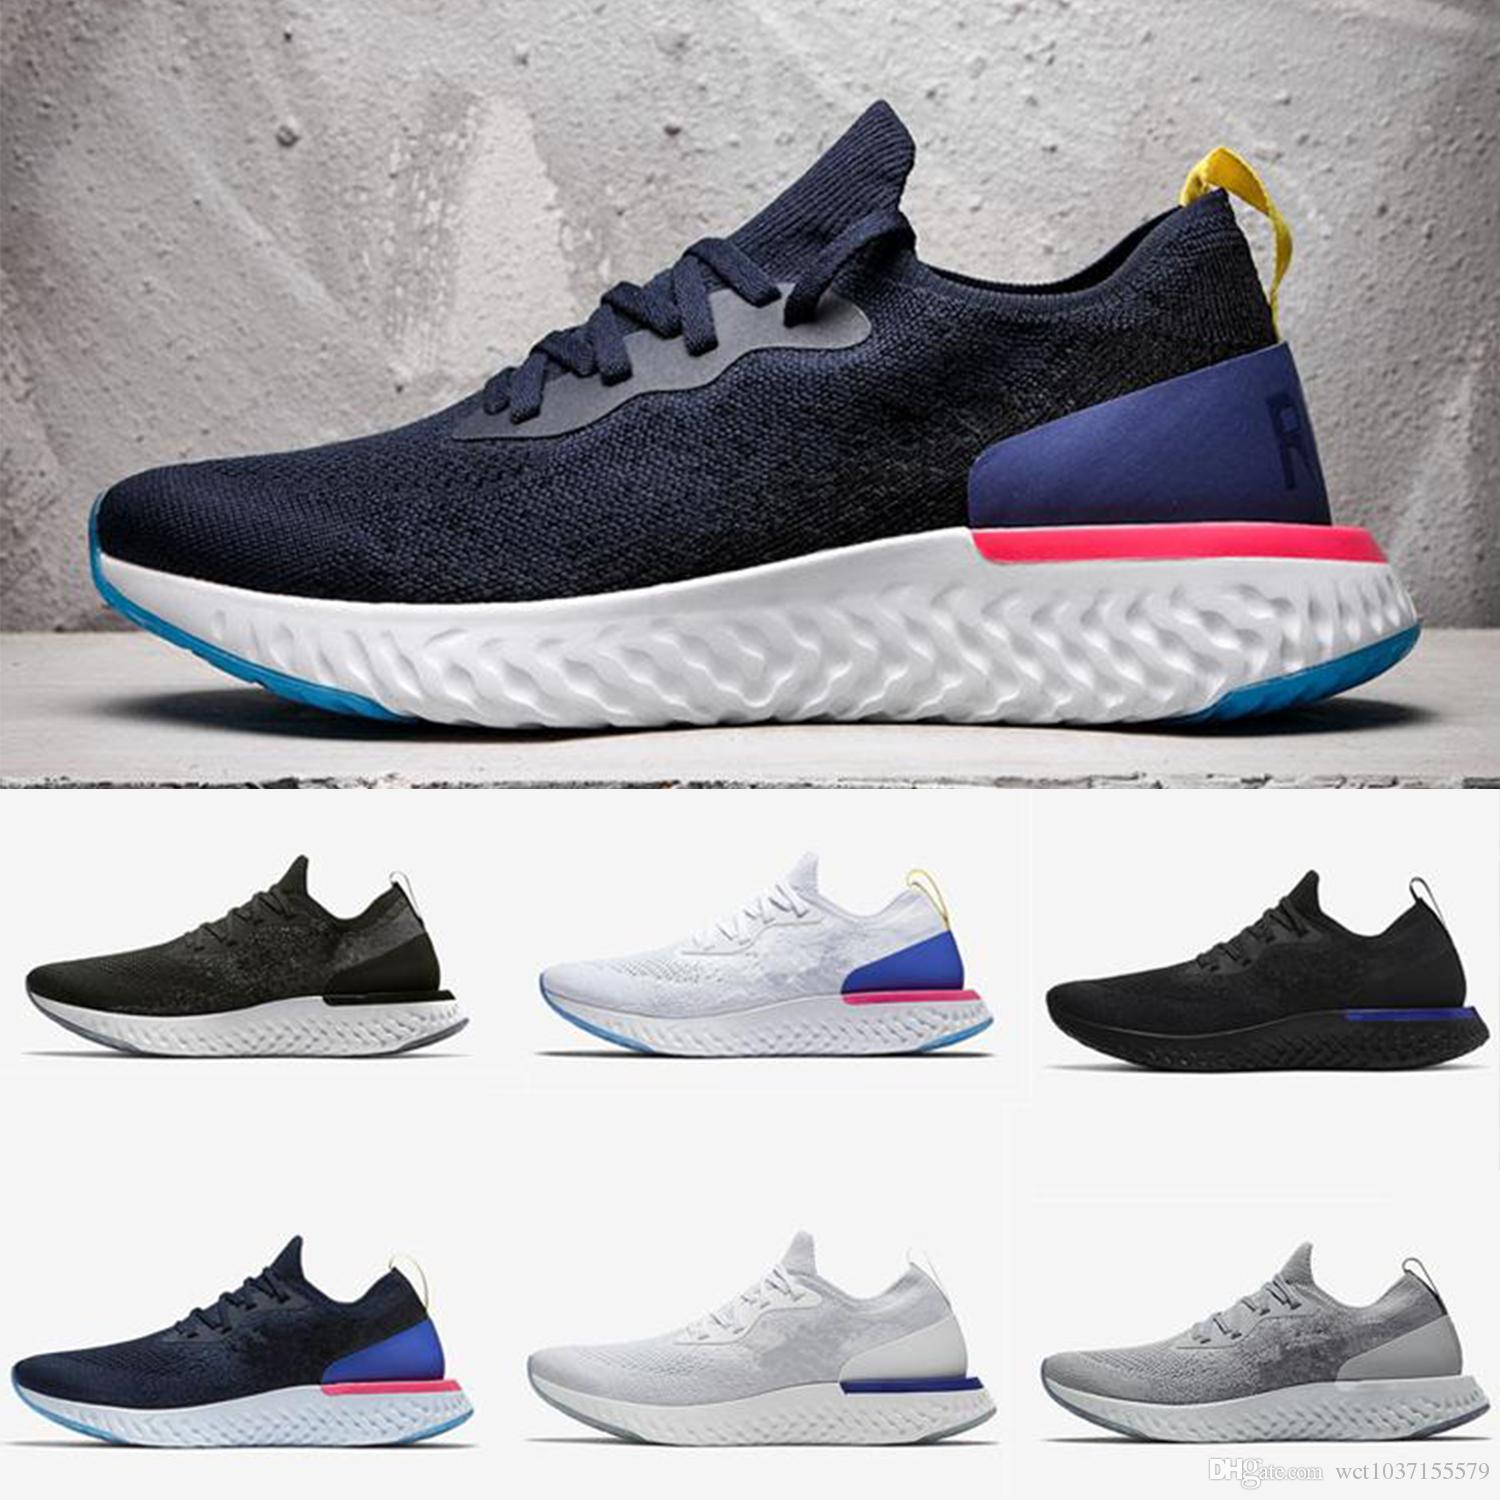 585a7fc1a302 2018 Hot Sale Epic React Instant Go Fly Men Women Running Shoes Summer  Causal Mesh Breathable Sport Athletic Trains Designer Sneakers US36 4 Running  Shoes ...